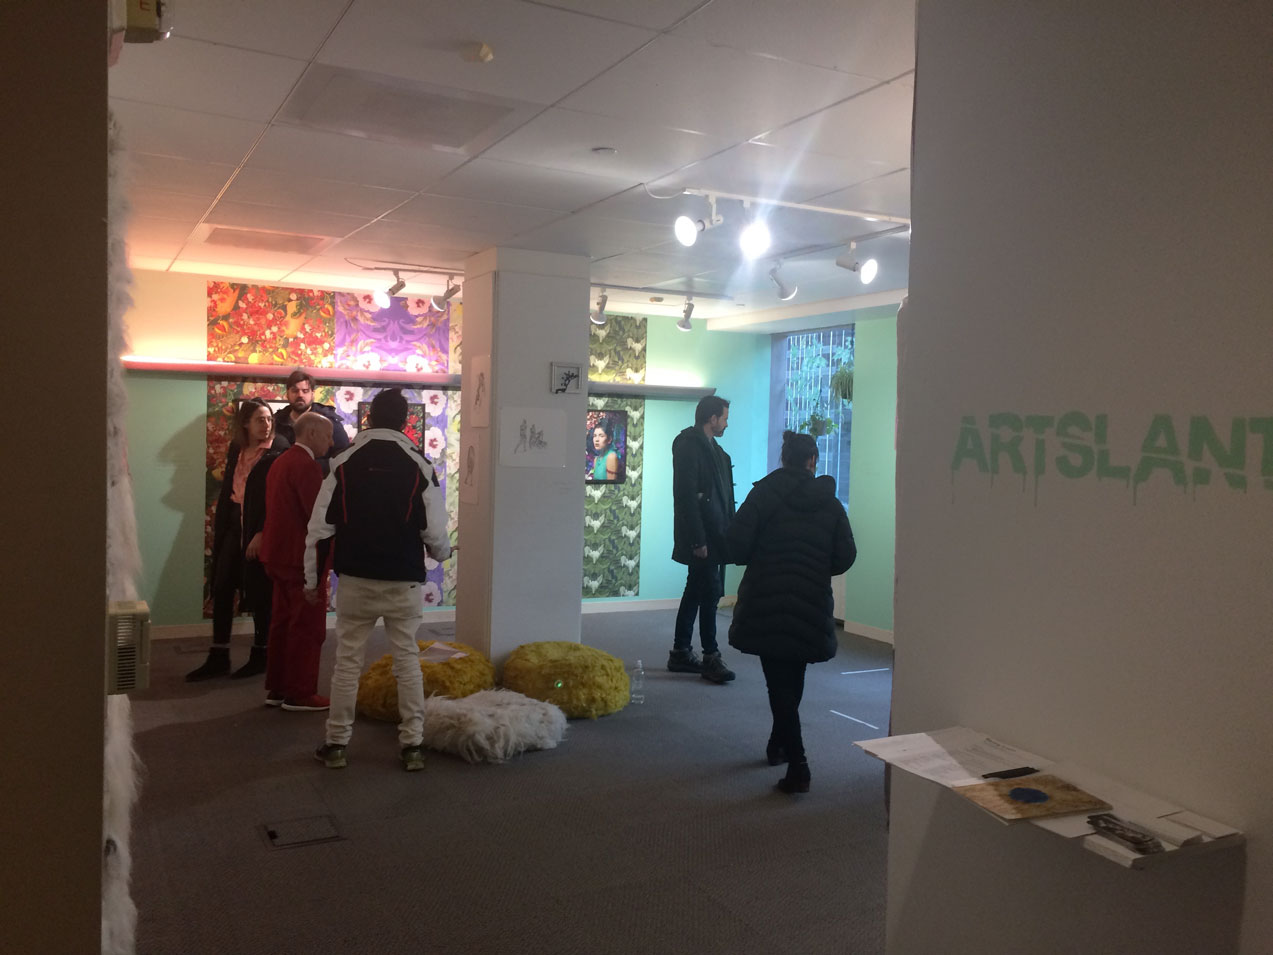 The Artslant Prize 2016 Exhibition , curated by Artslant editors Andrea Alessi and Joel Kuennen